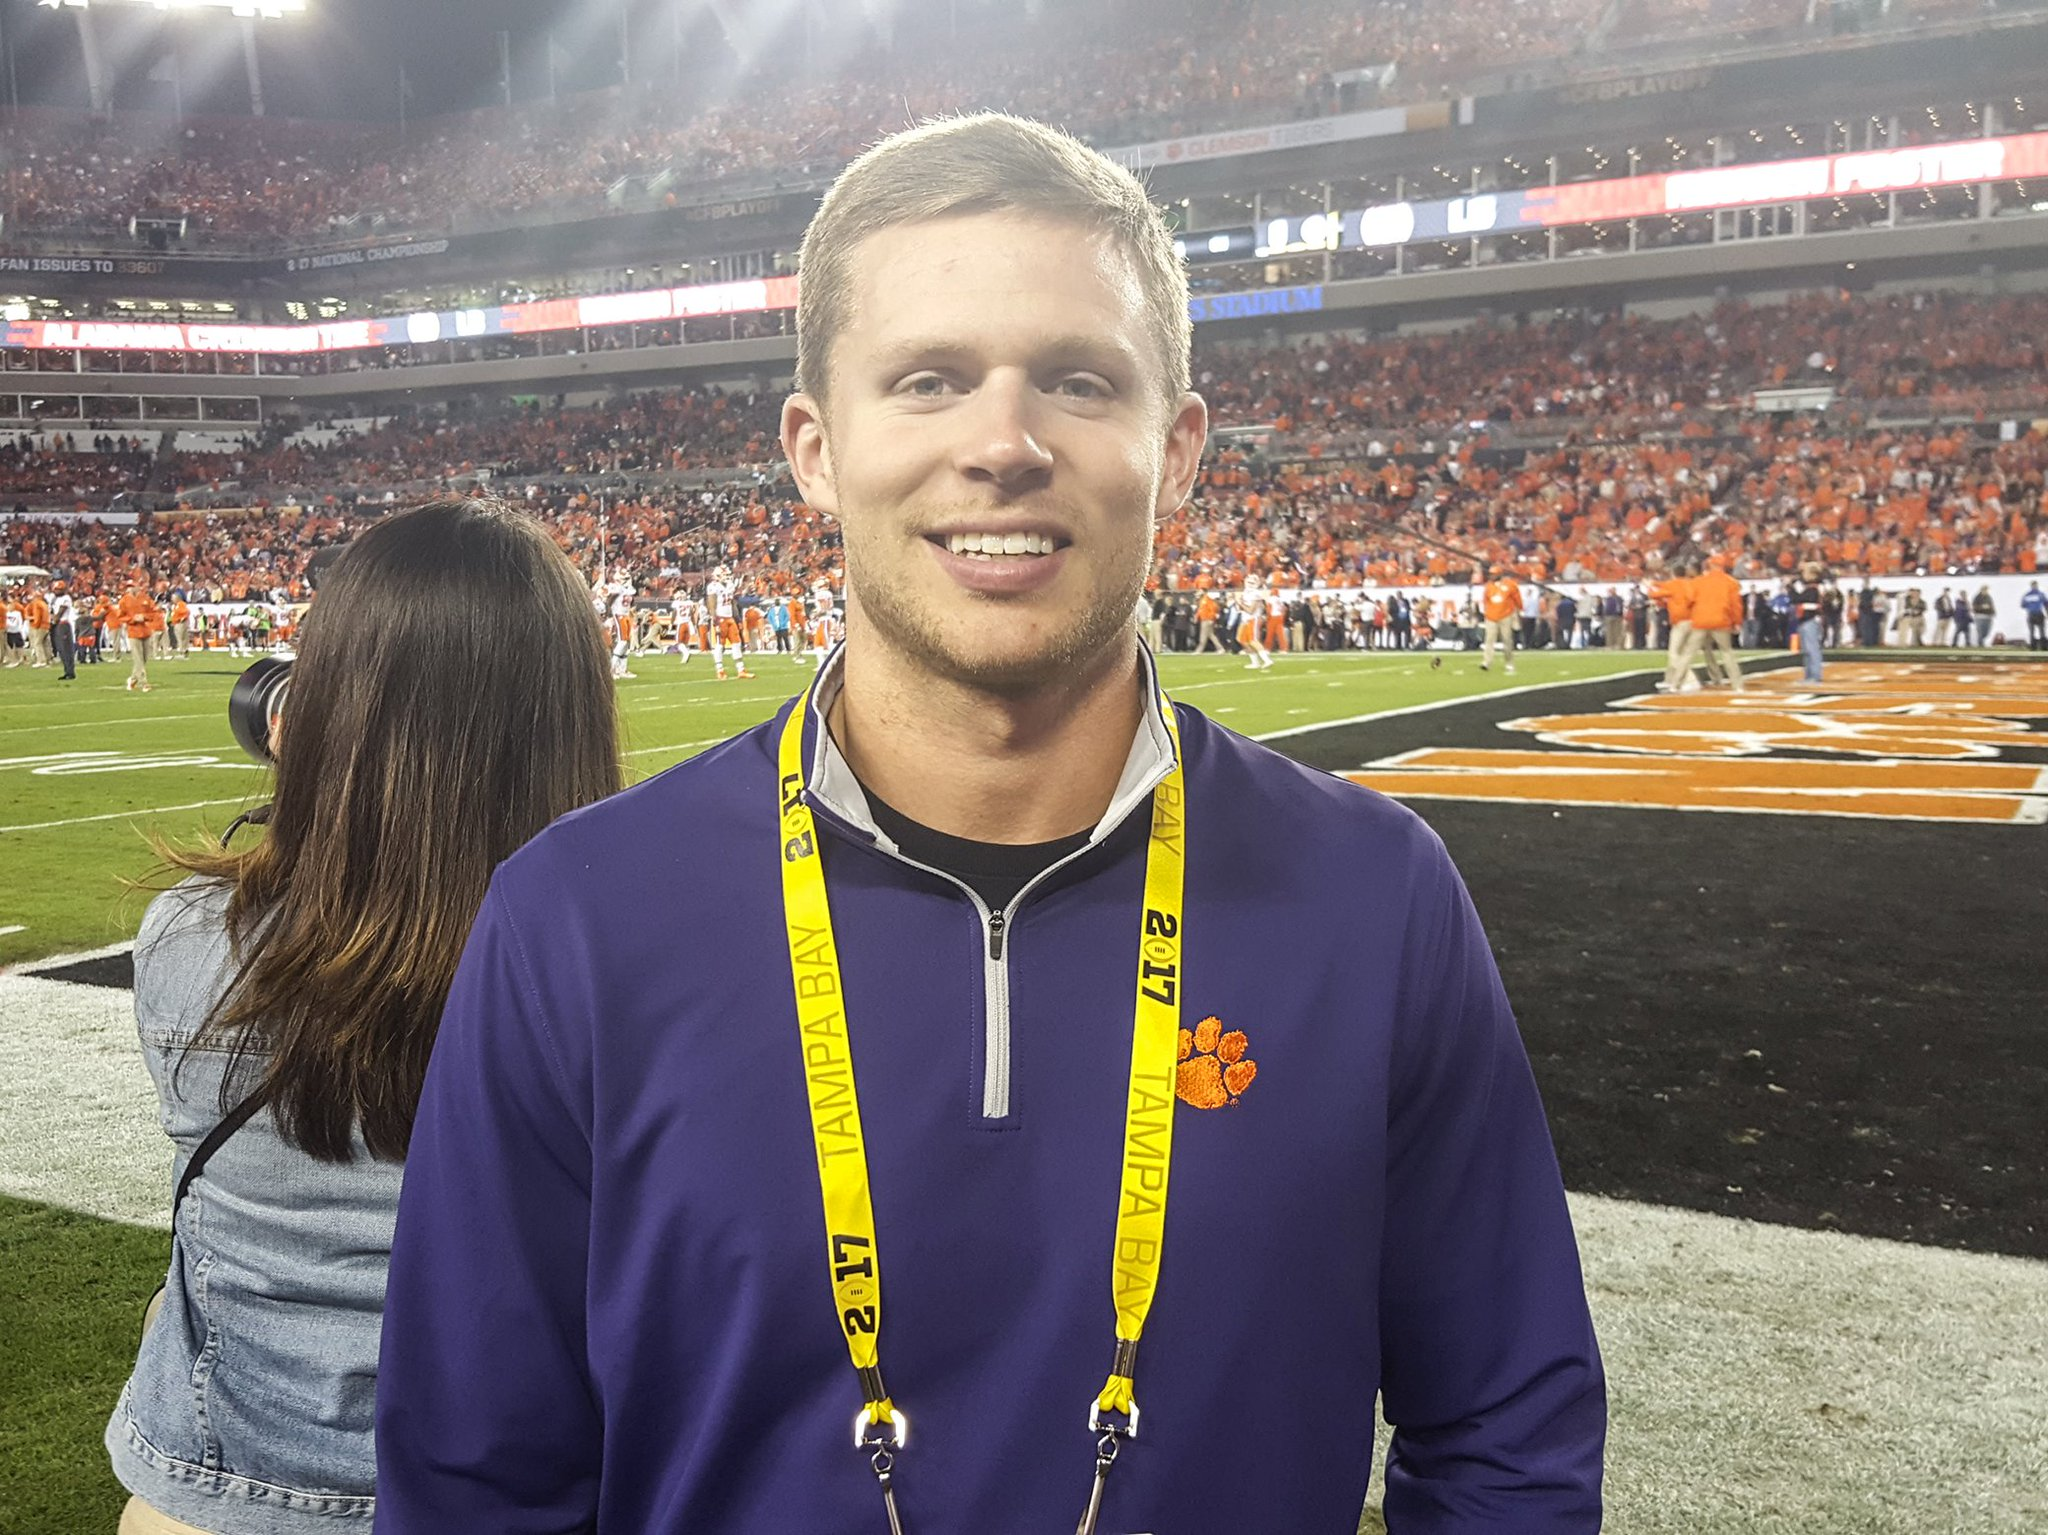 .@adamhumphries13 at his home stadium. #ClemsonFamily @TBBuccaneers #ALLIN https://t.co/ZQ44T6VdEw